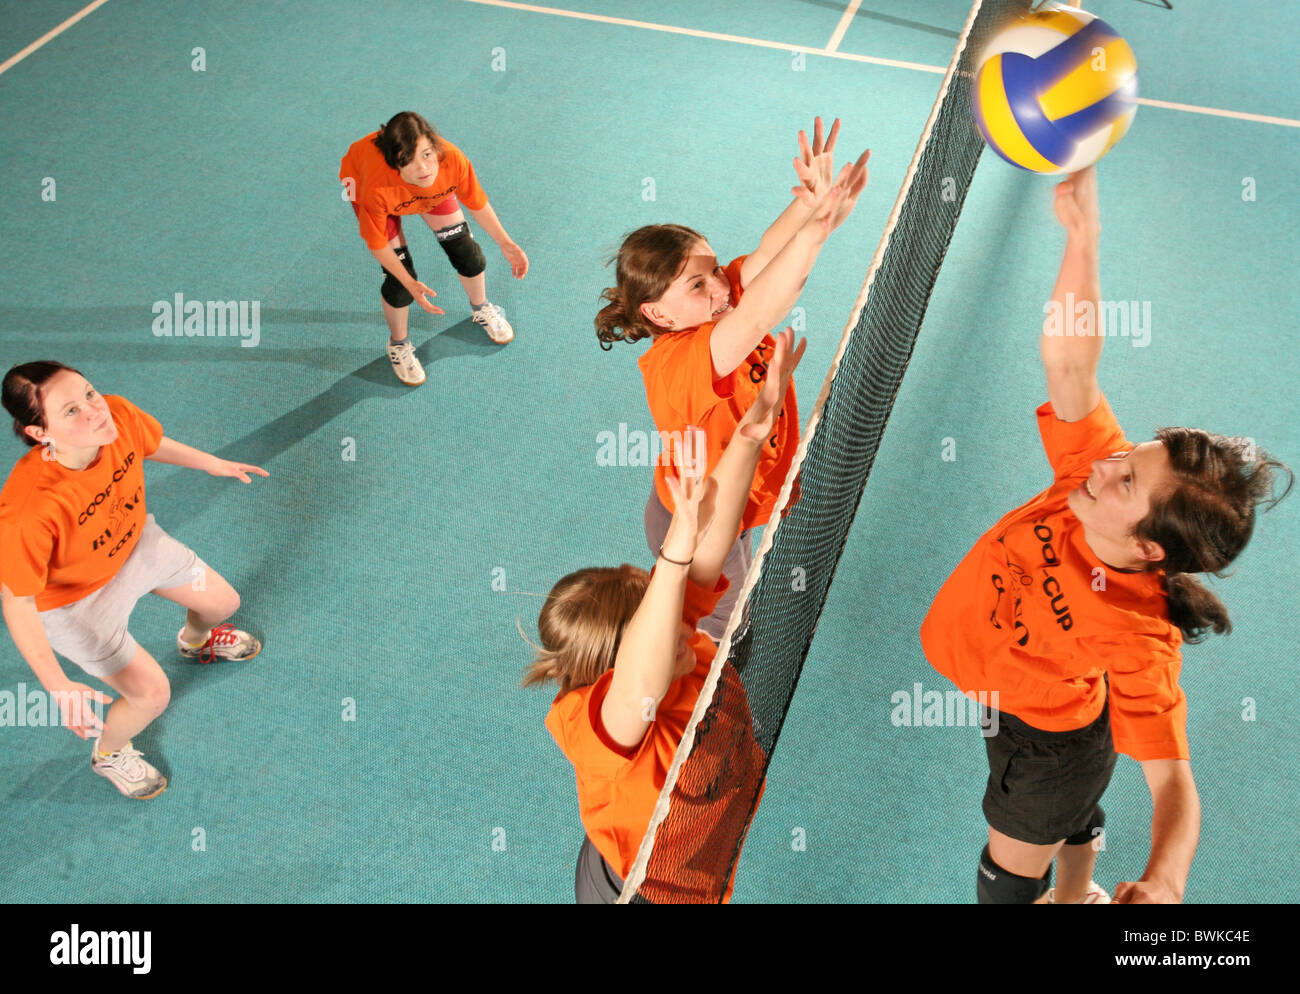 Active Young Women Volleyball Player Sport Stock Vector: Volleyball School Stock Photos & Volleyball School Stock